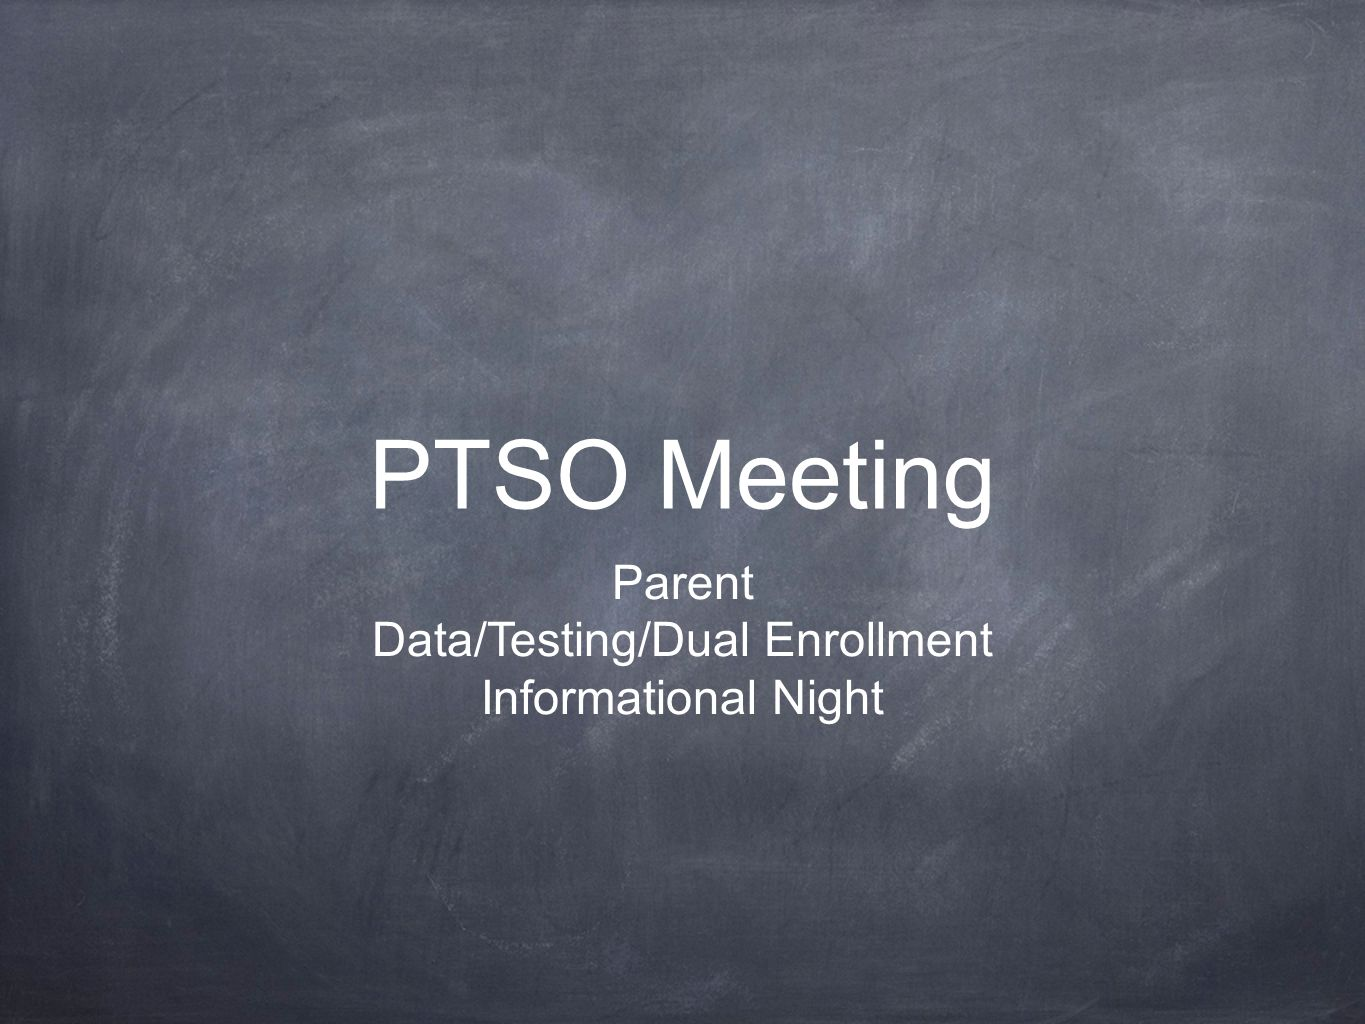 PTSO Meeting Parent Data/Testing/Dual Enrollment Informational Night